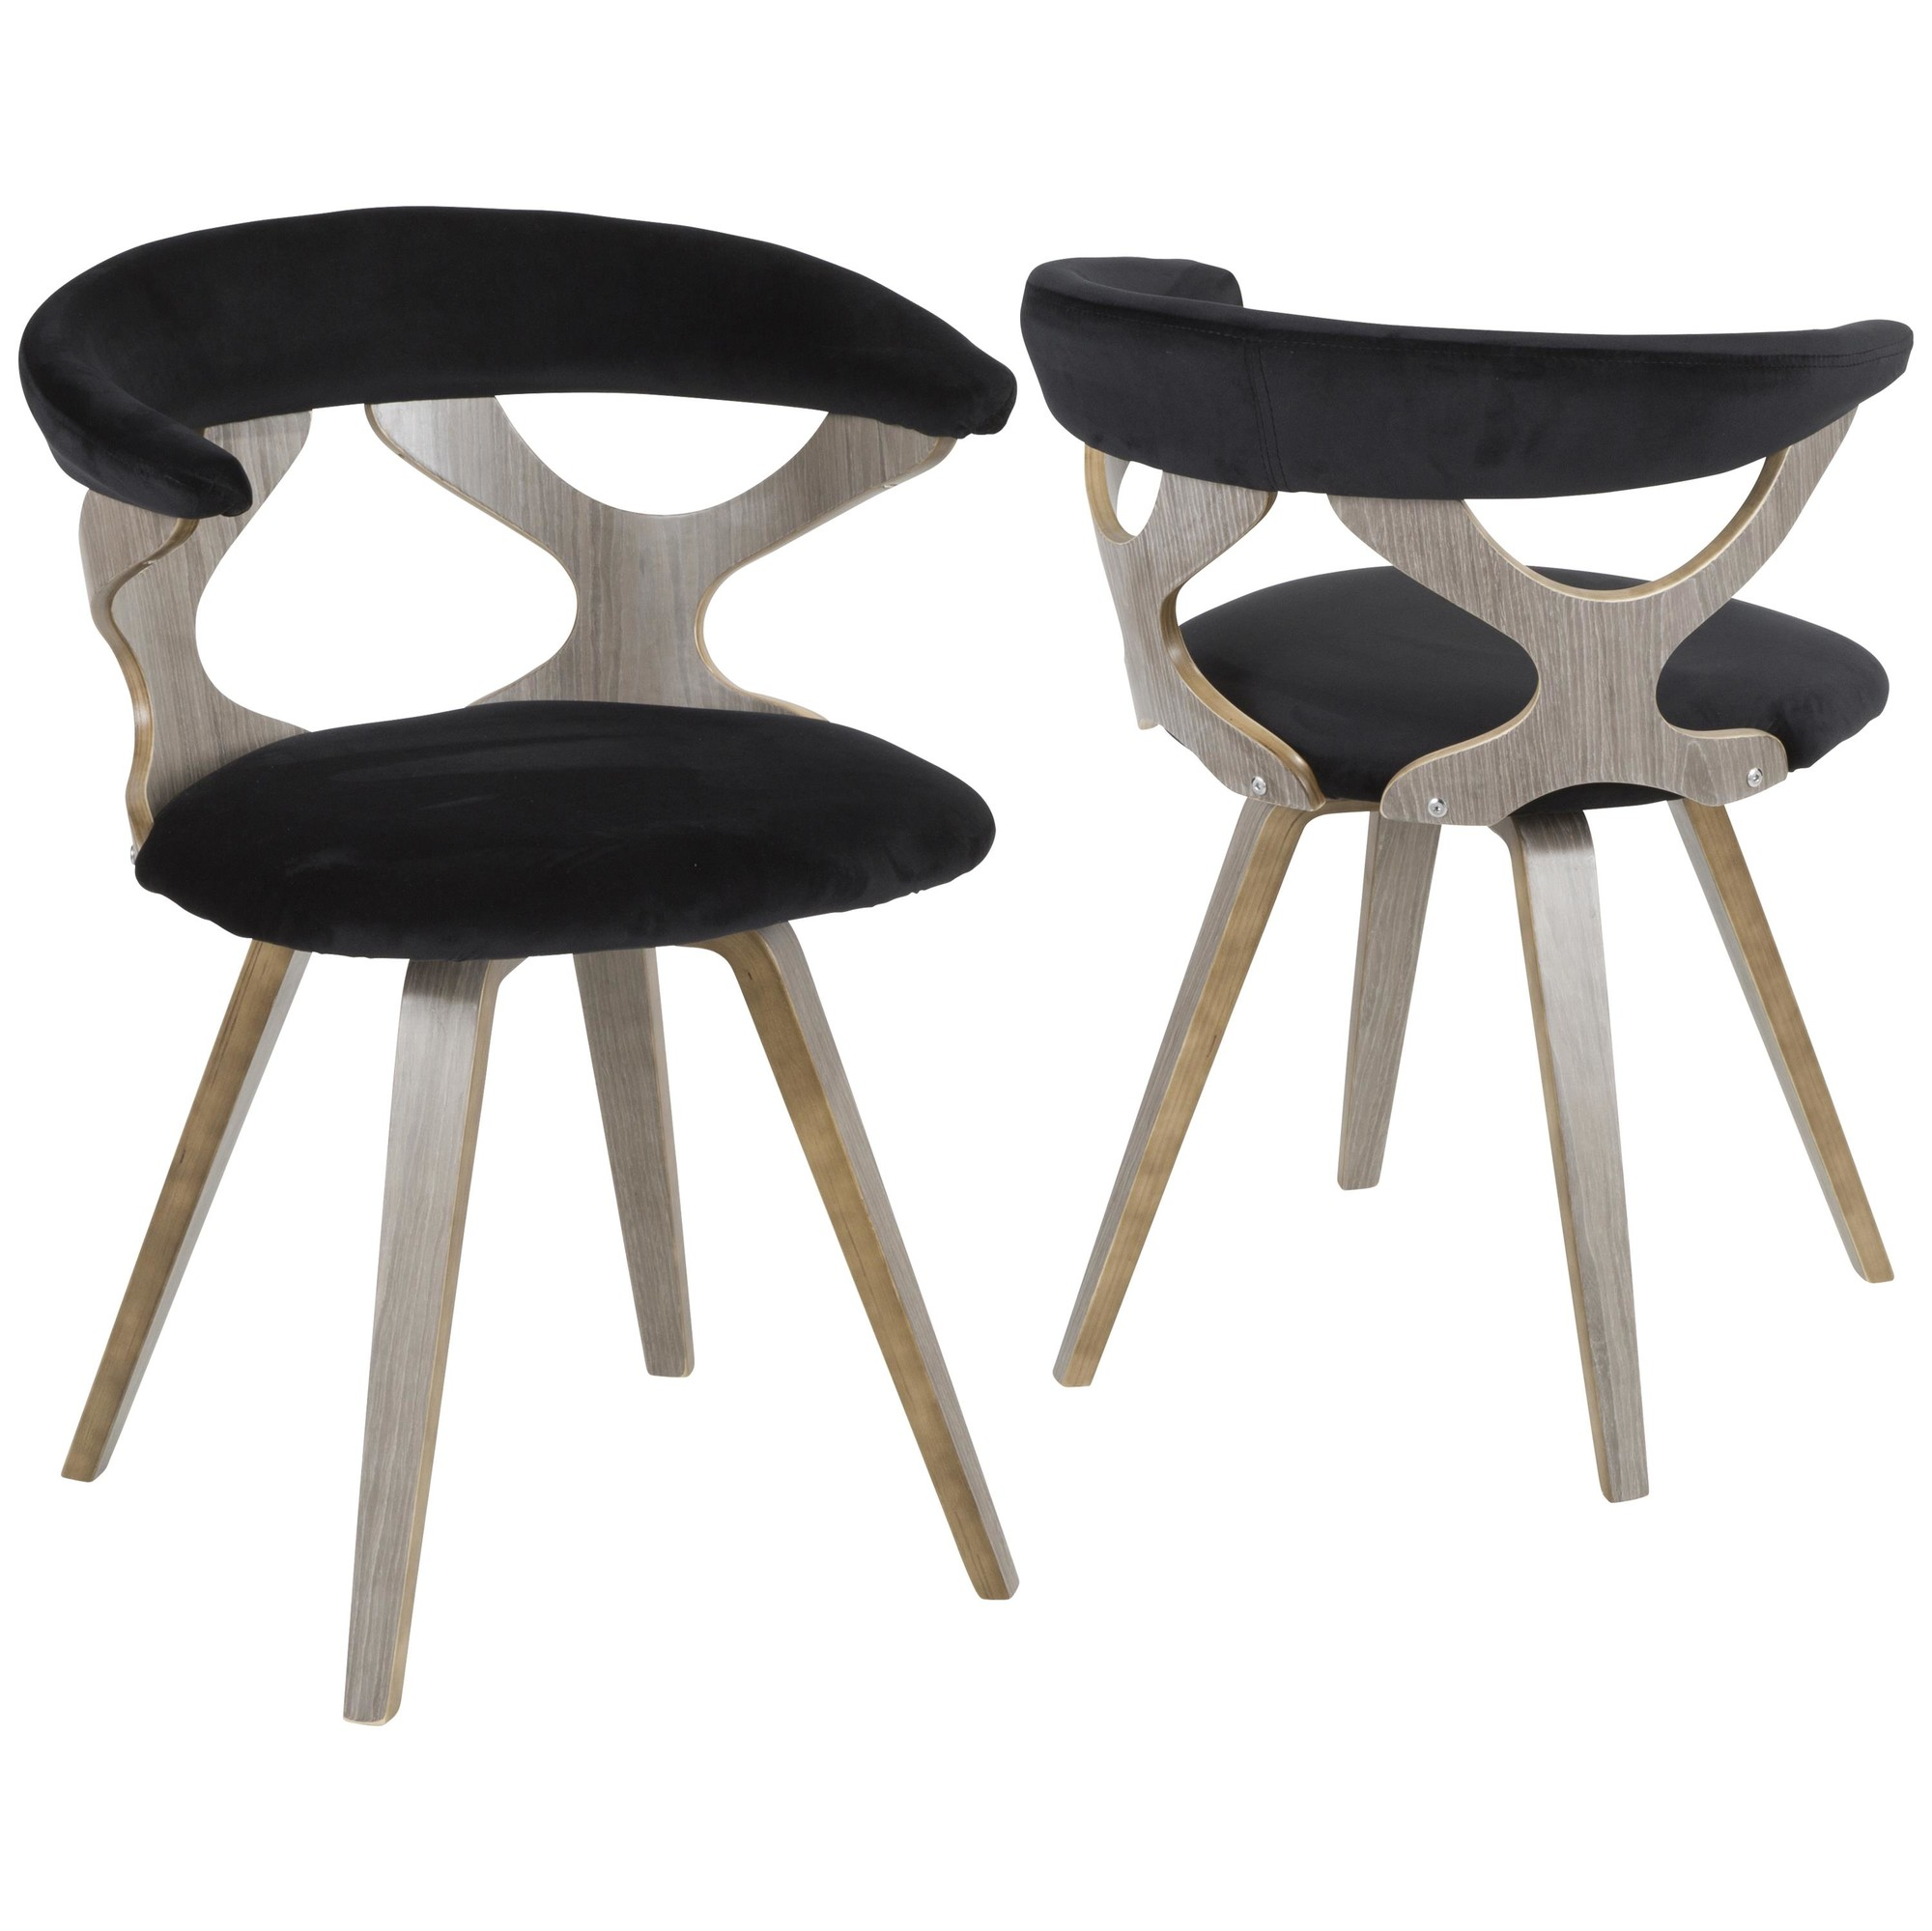 Gardenia Mid Century Modern Dining Accent Chair With Swivel In Light Grey Wood And Black Velvet By Lumisource Walmart Com Walmart Com